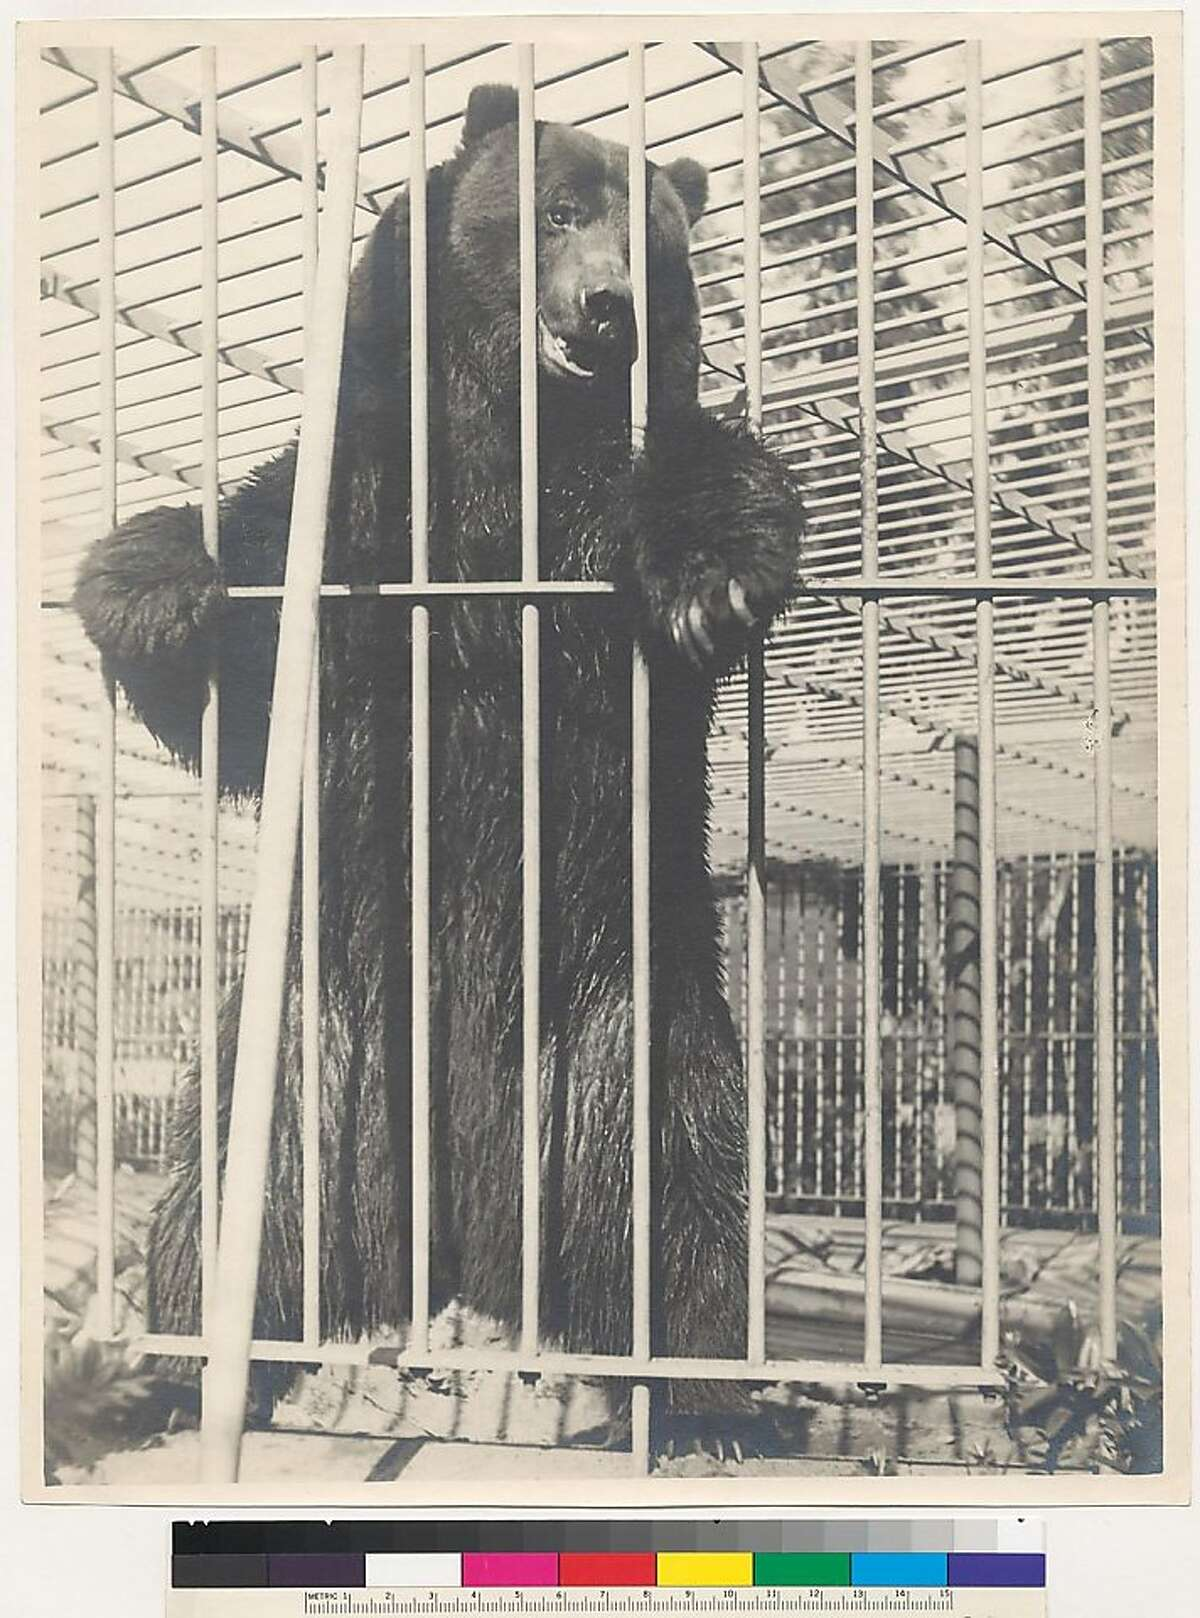 Monarch in his enclosure at Golden Gate Park. The last California grizzly bear in captivity, Monarch died in 1911. He was the model for California's bear flag.